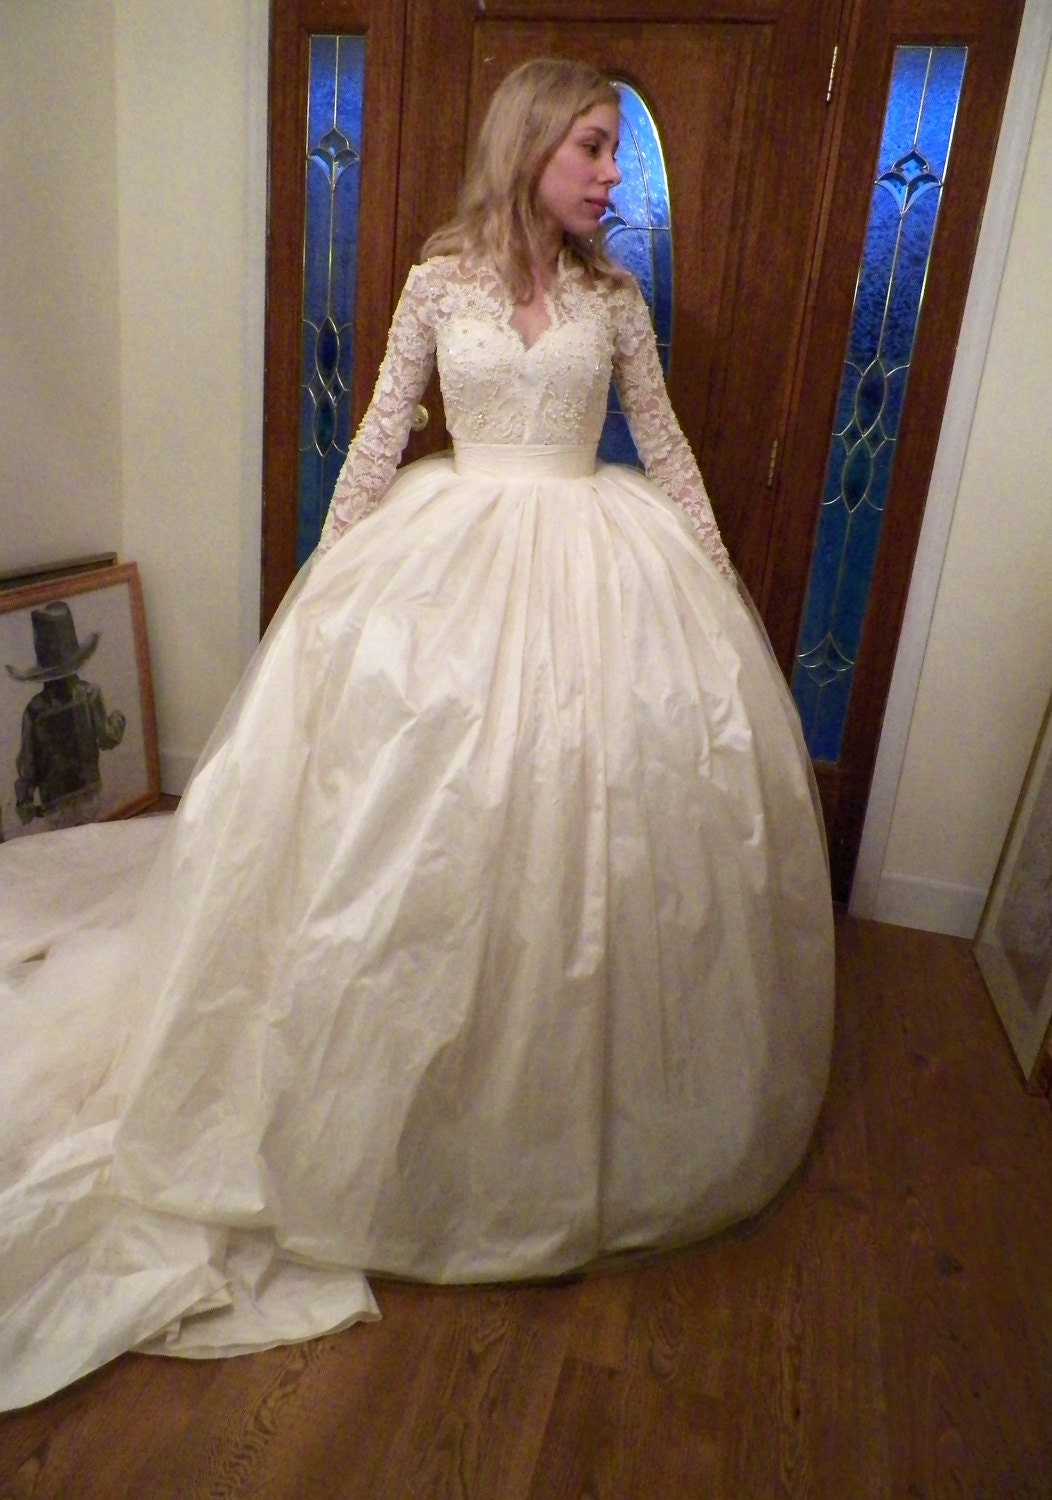 Jay wearing the bell cage crinoline under her wedding dress